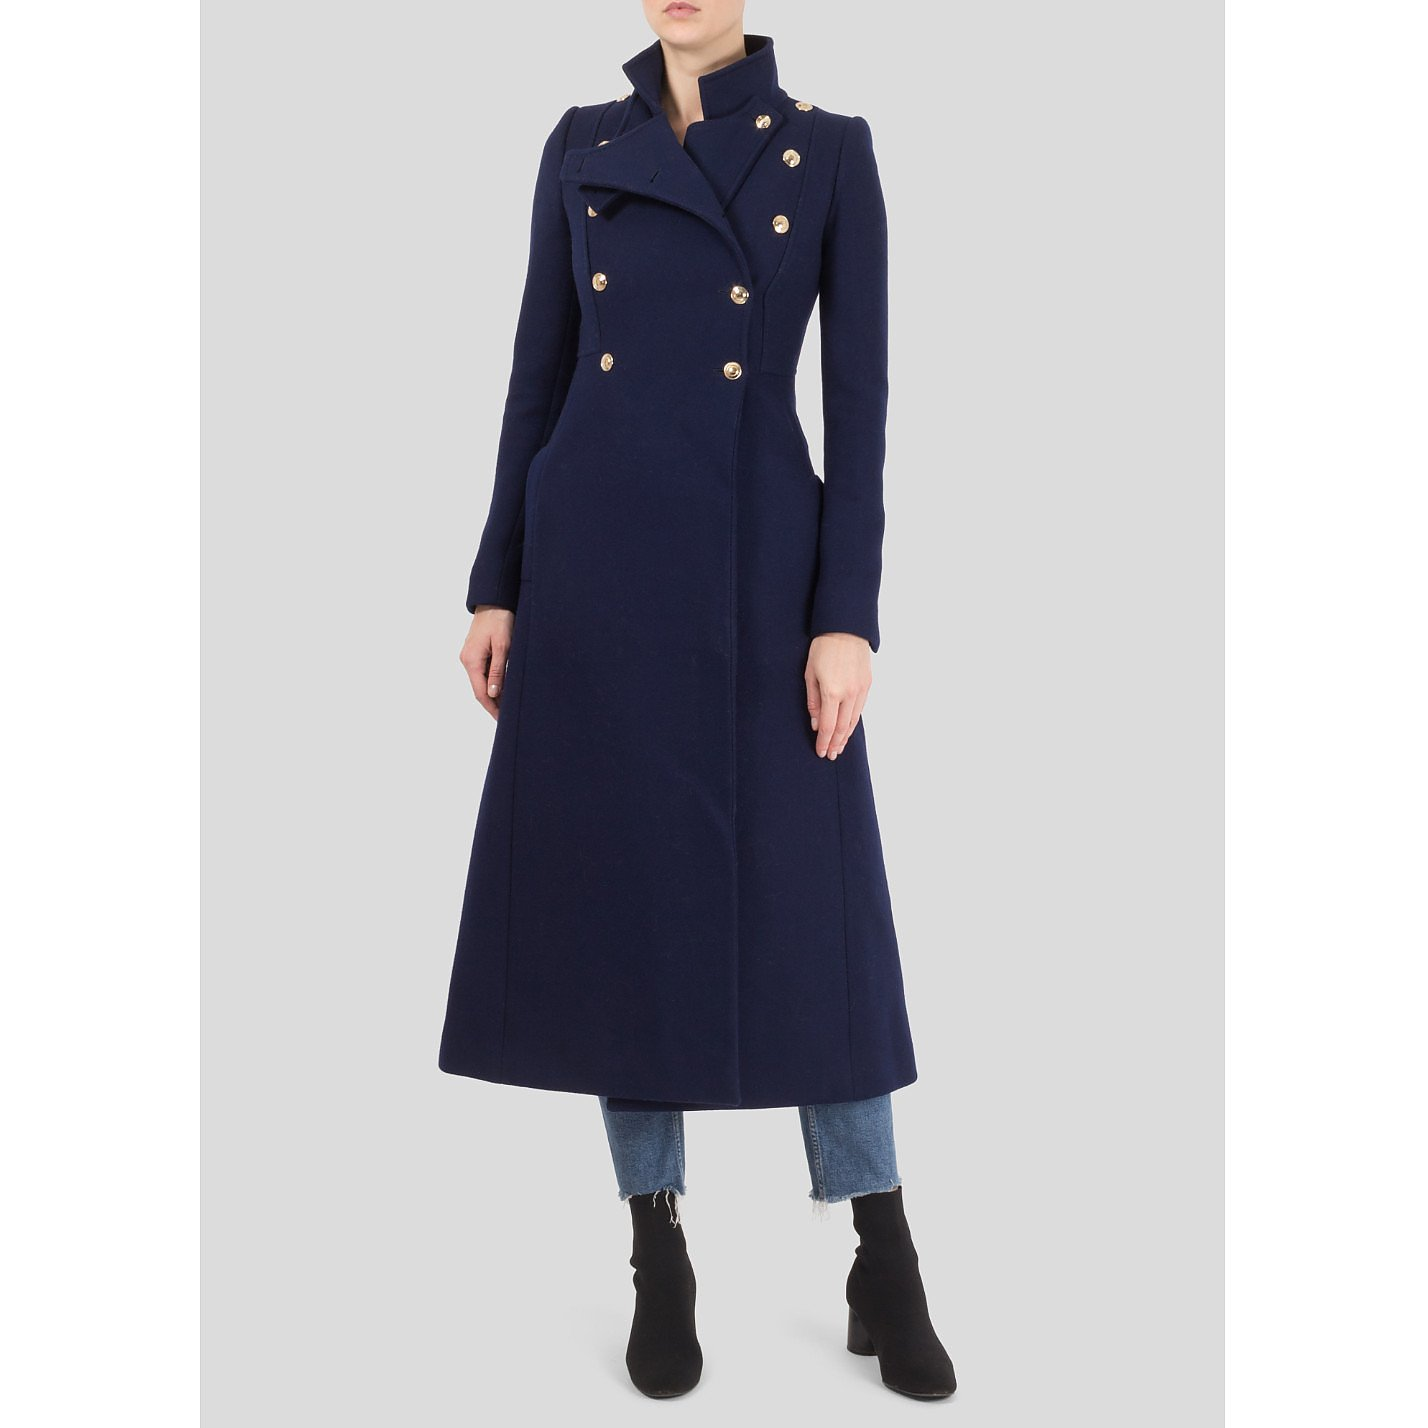 Gucci Tailored Military Coat